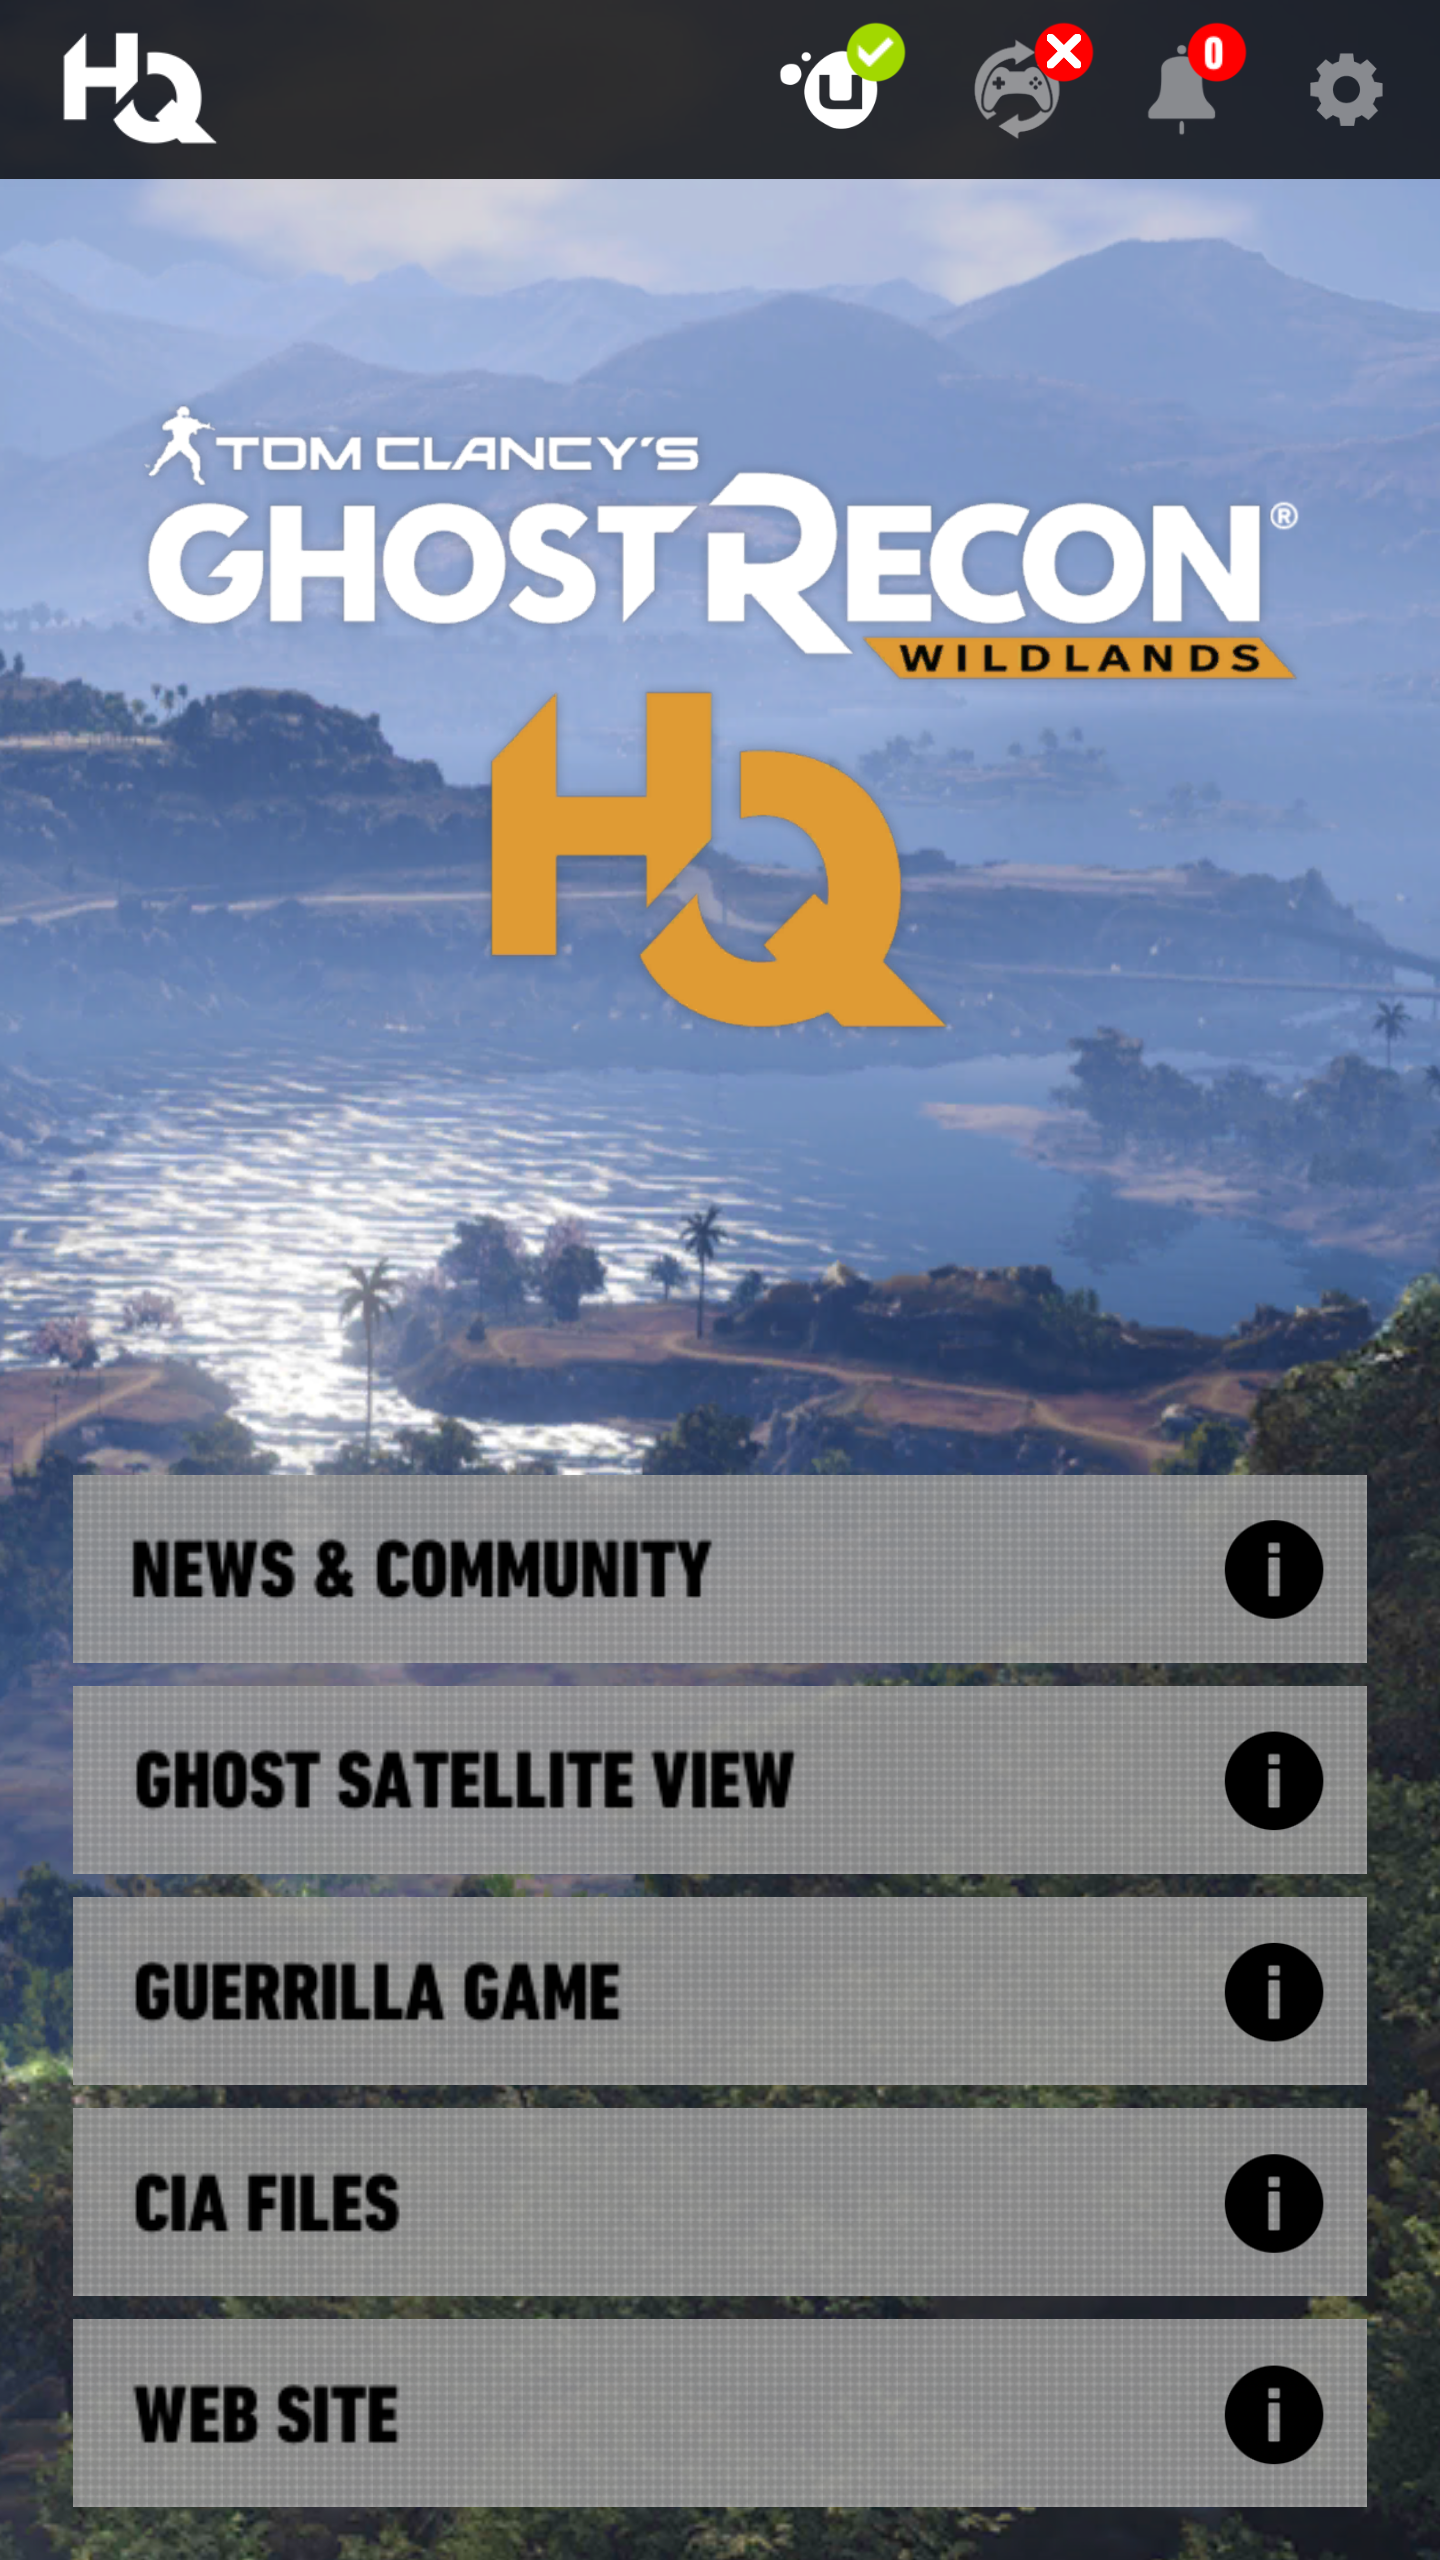 https://androidcommunity.com/ubisoft-releases-ghost-recon-wildlands-hq-companion-app-for-new-tom-clancy-game-20170206/